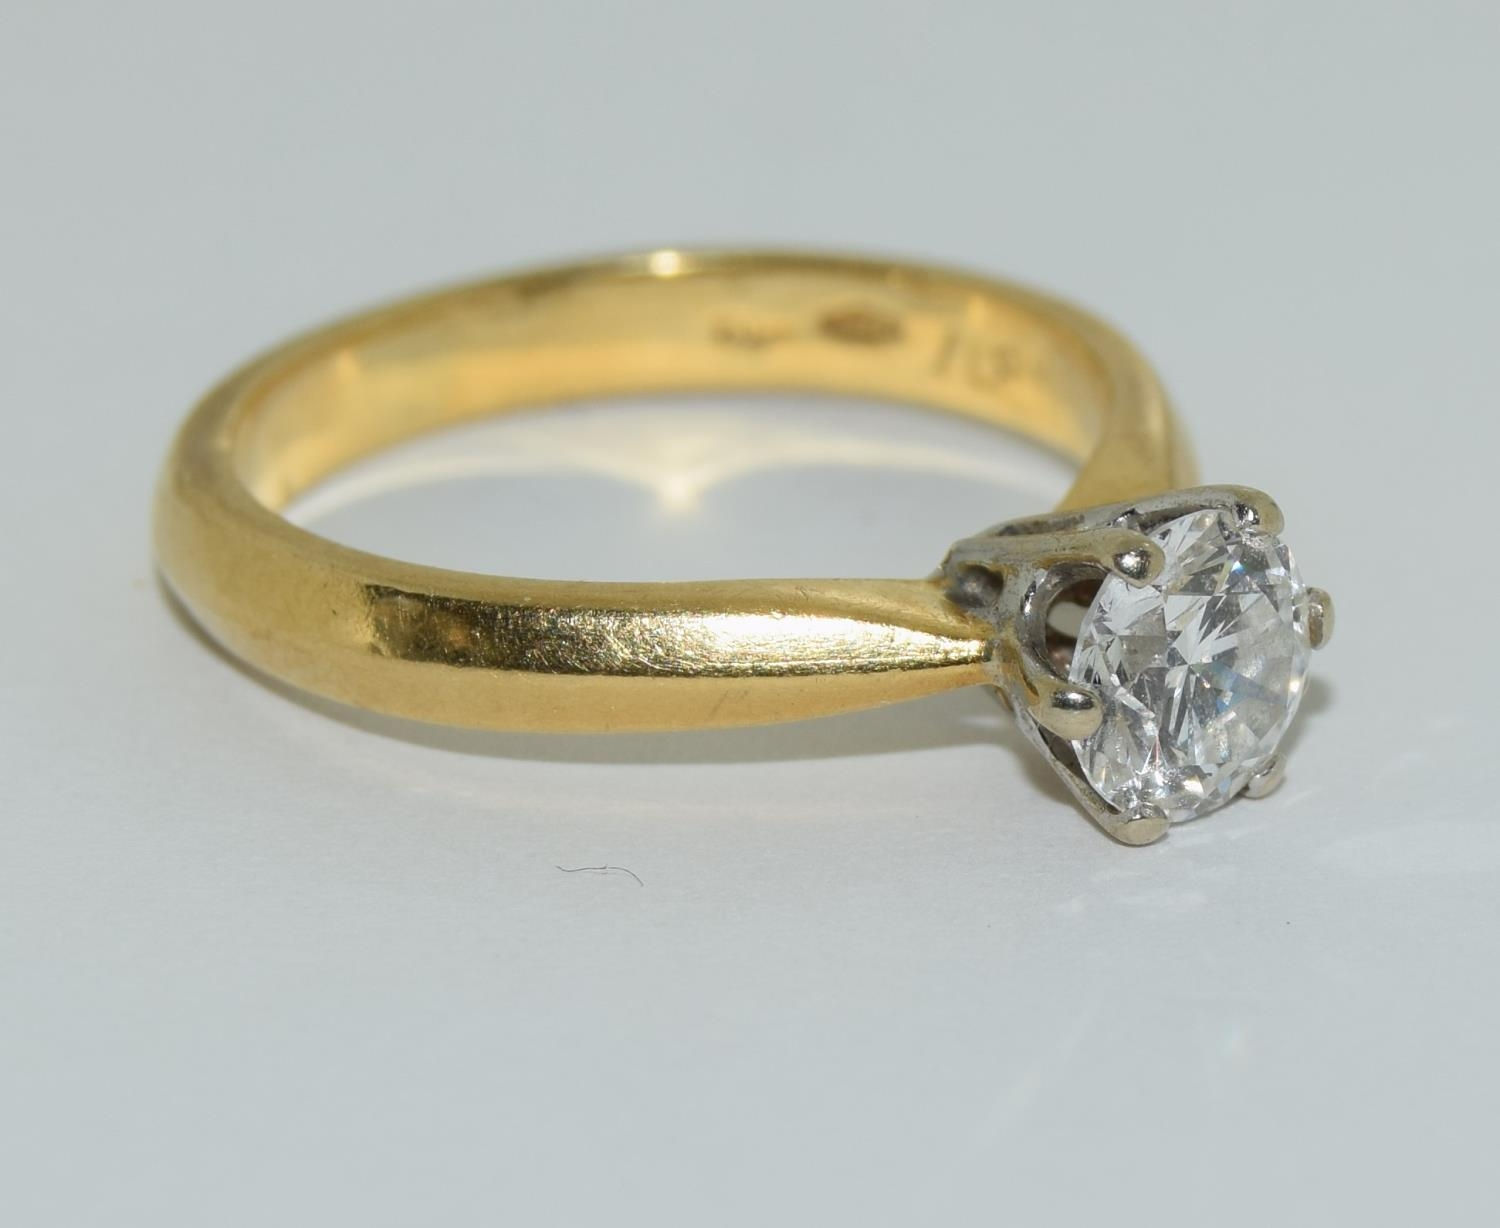 An 18ct white gold ladies diamond solitaire ring 0.75ct Approx., Size M. - Image 5 of 6